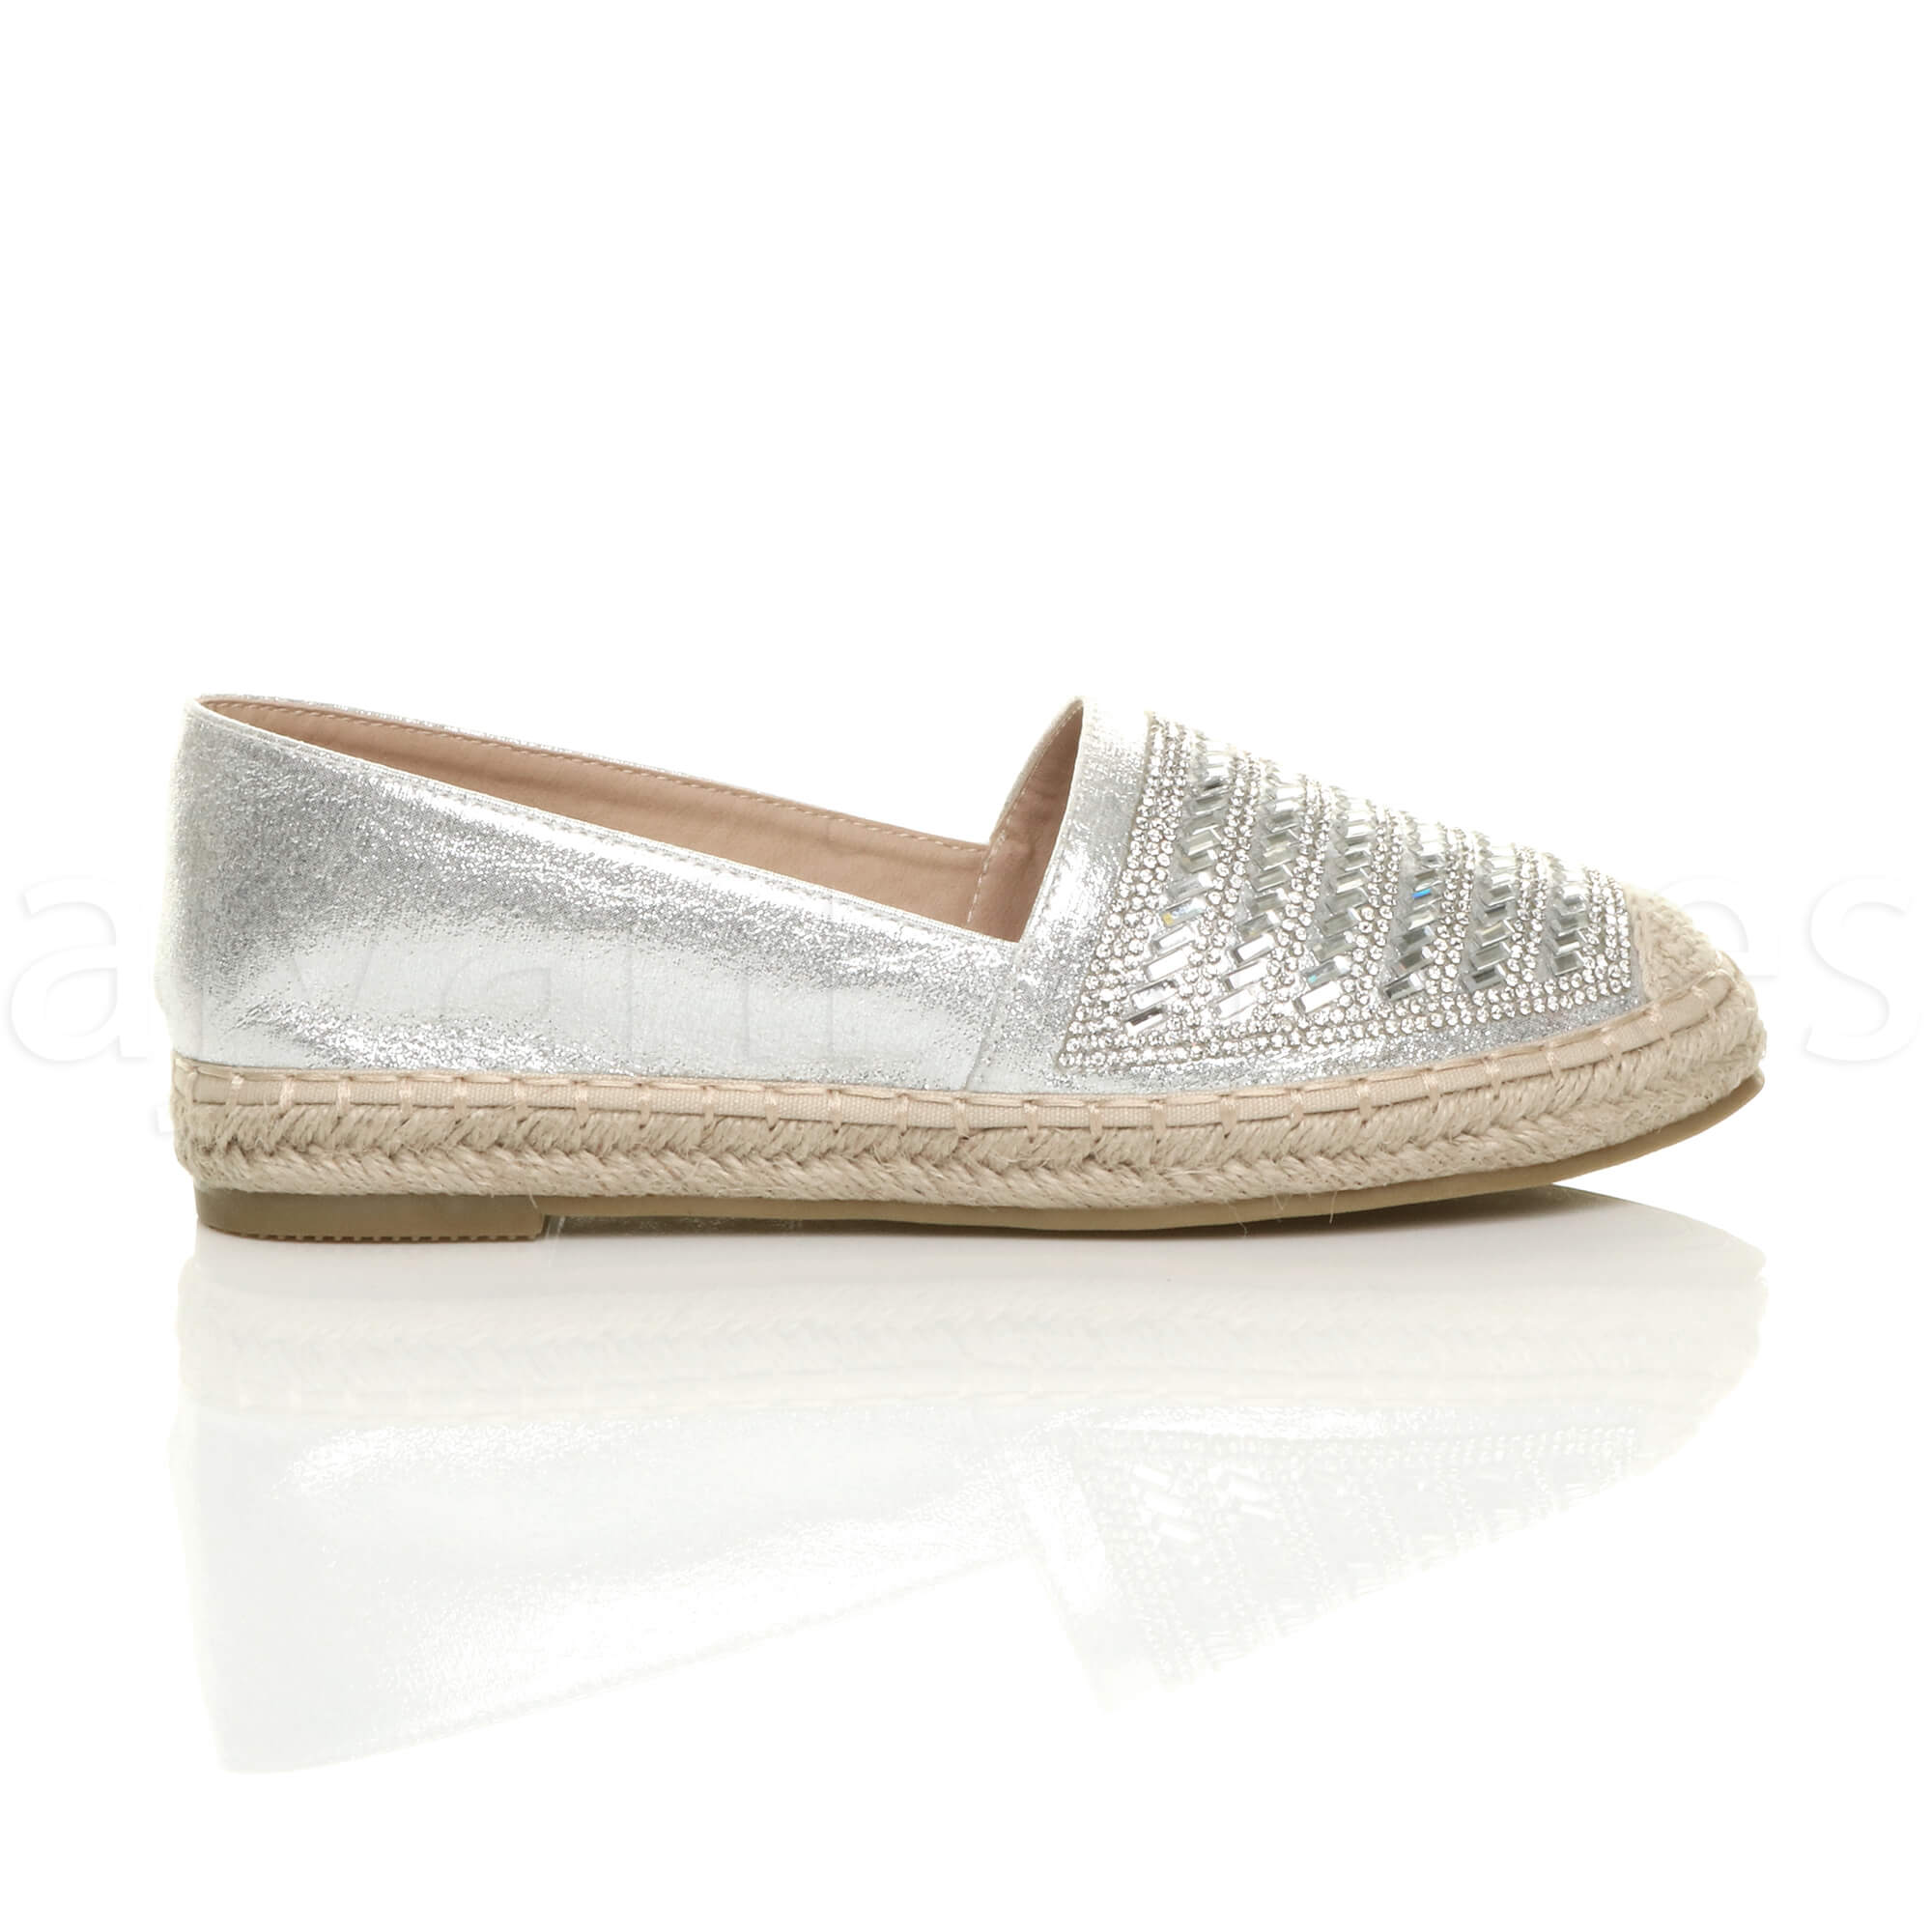 WOMENS-LADIES-FLAT-PLATFORM-ESPADRILLES-LOAFERS-DIAMANTE-FLATFORM-SHOES-SIZE